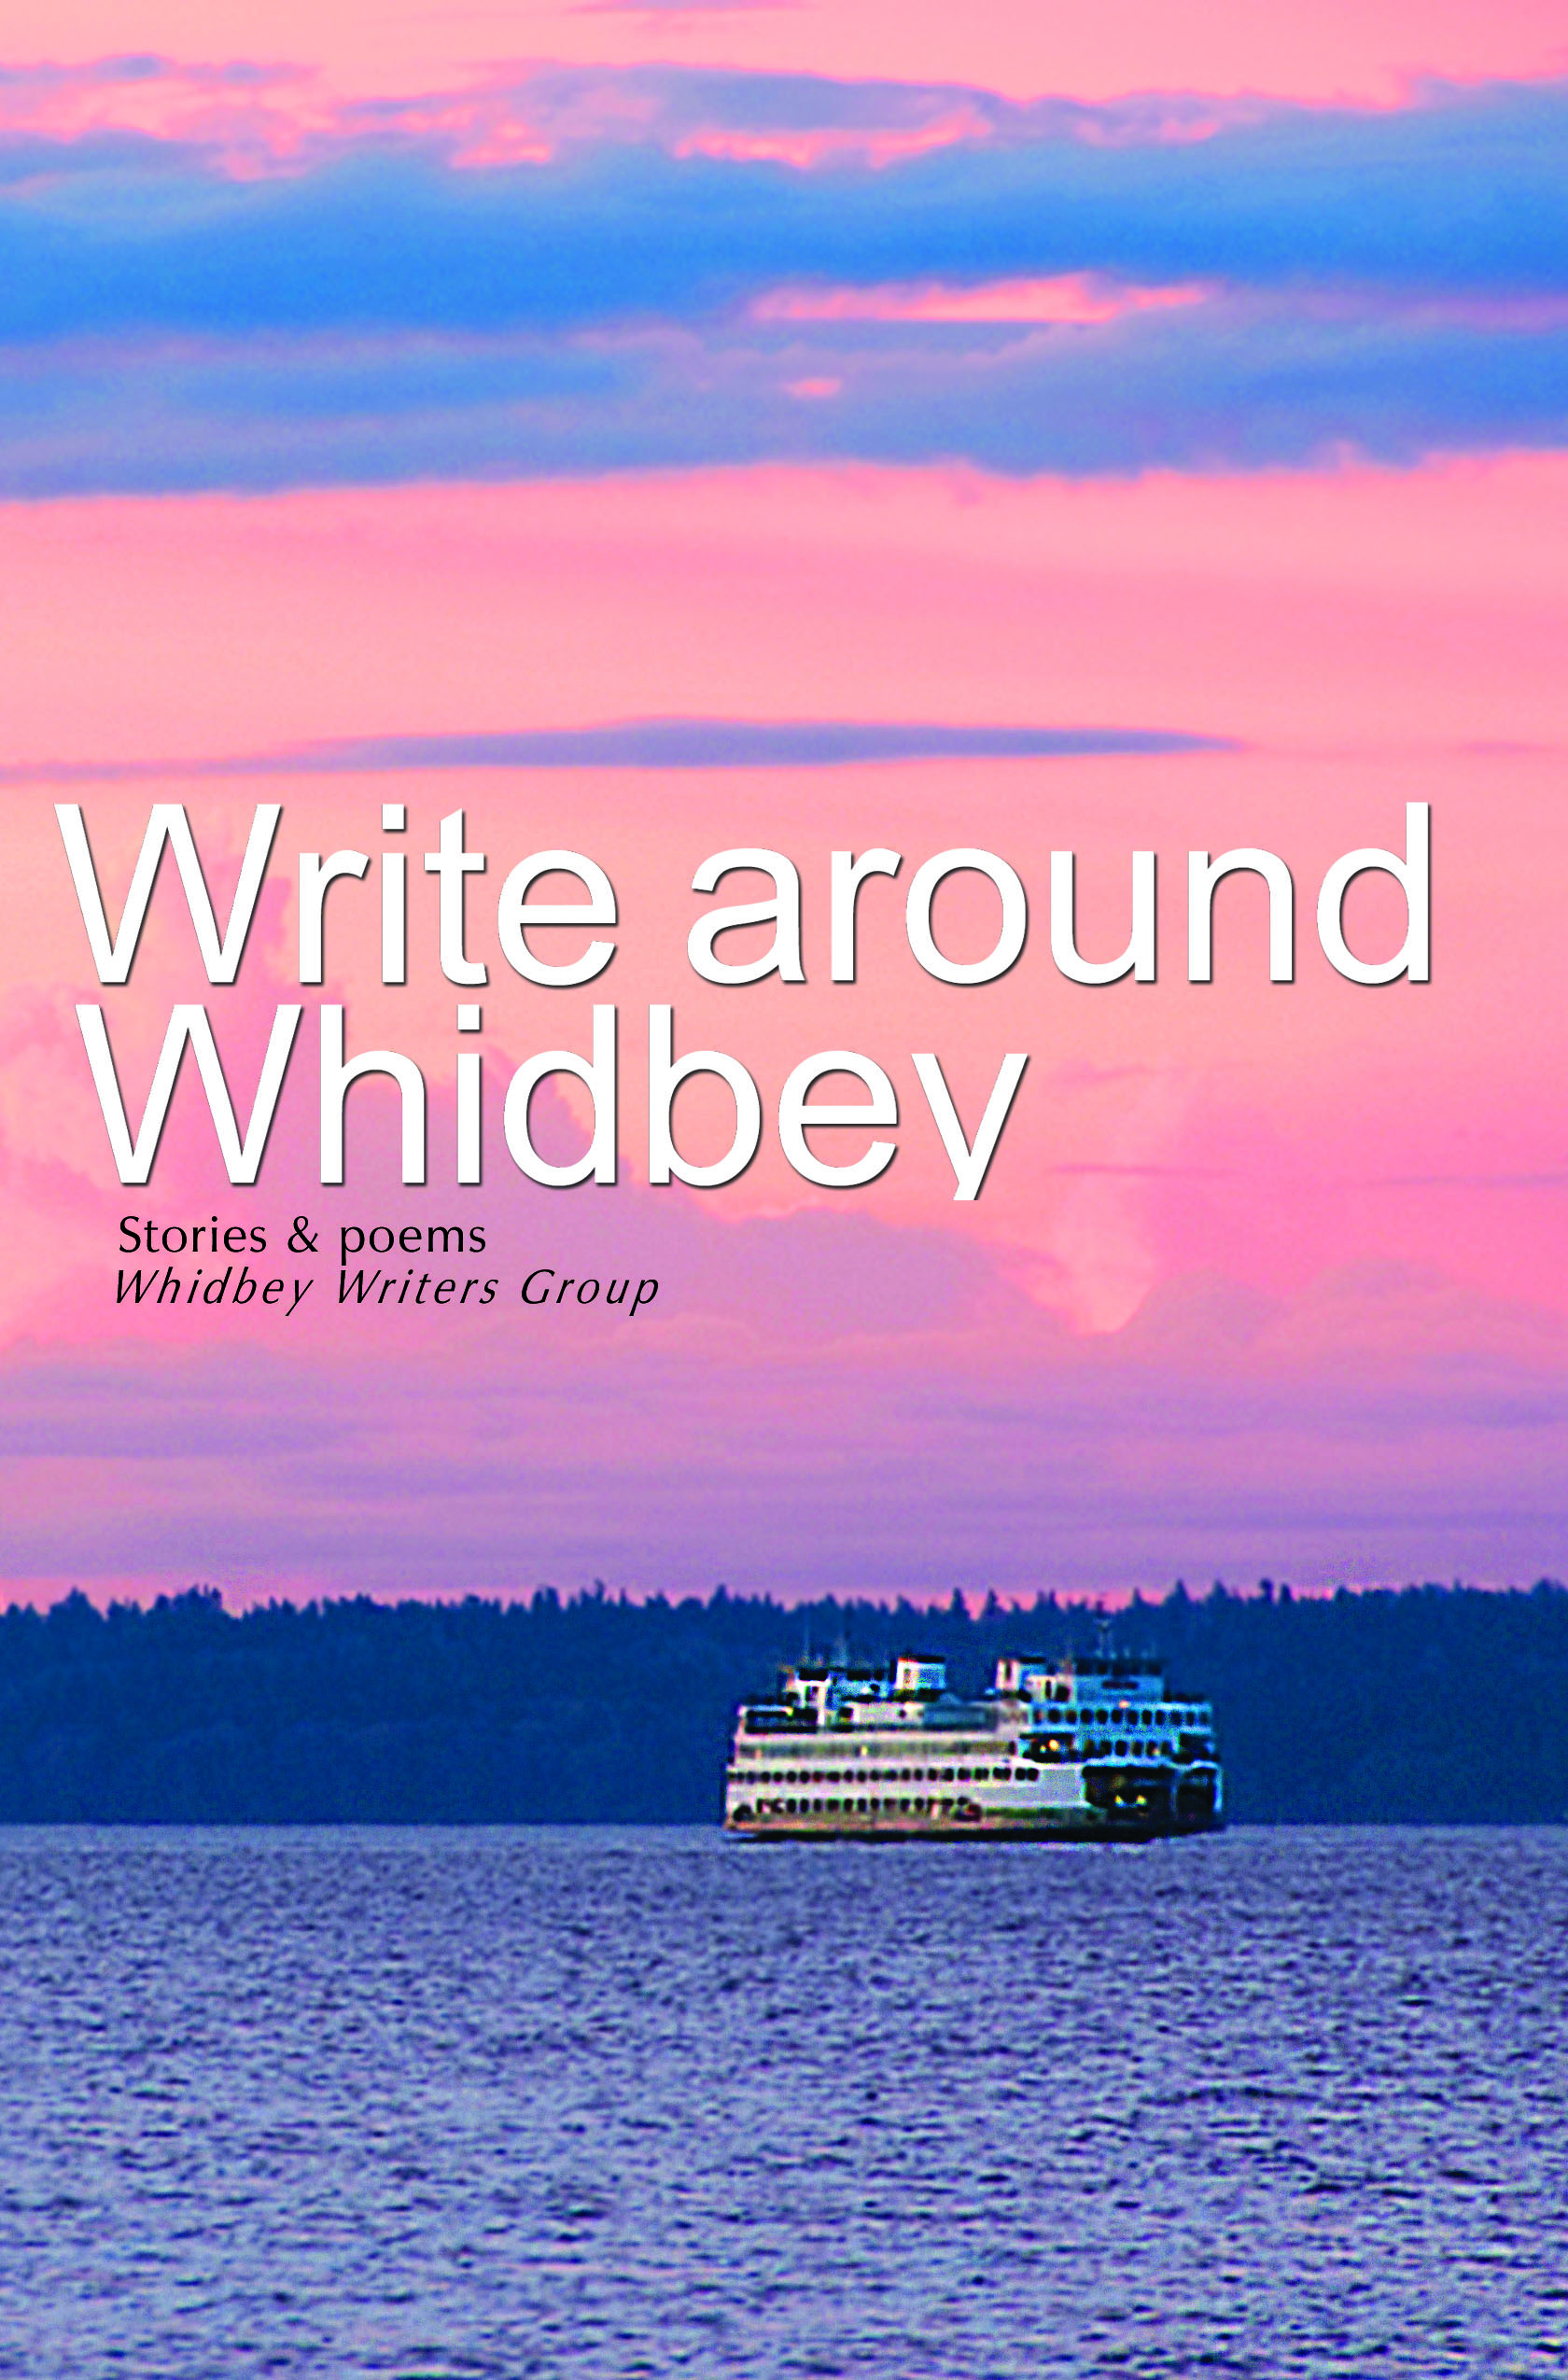 Write around Whidbey